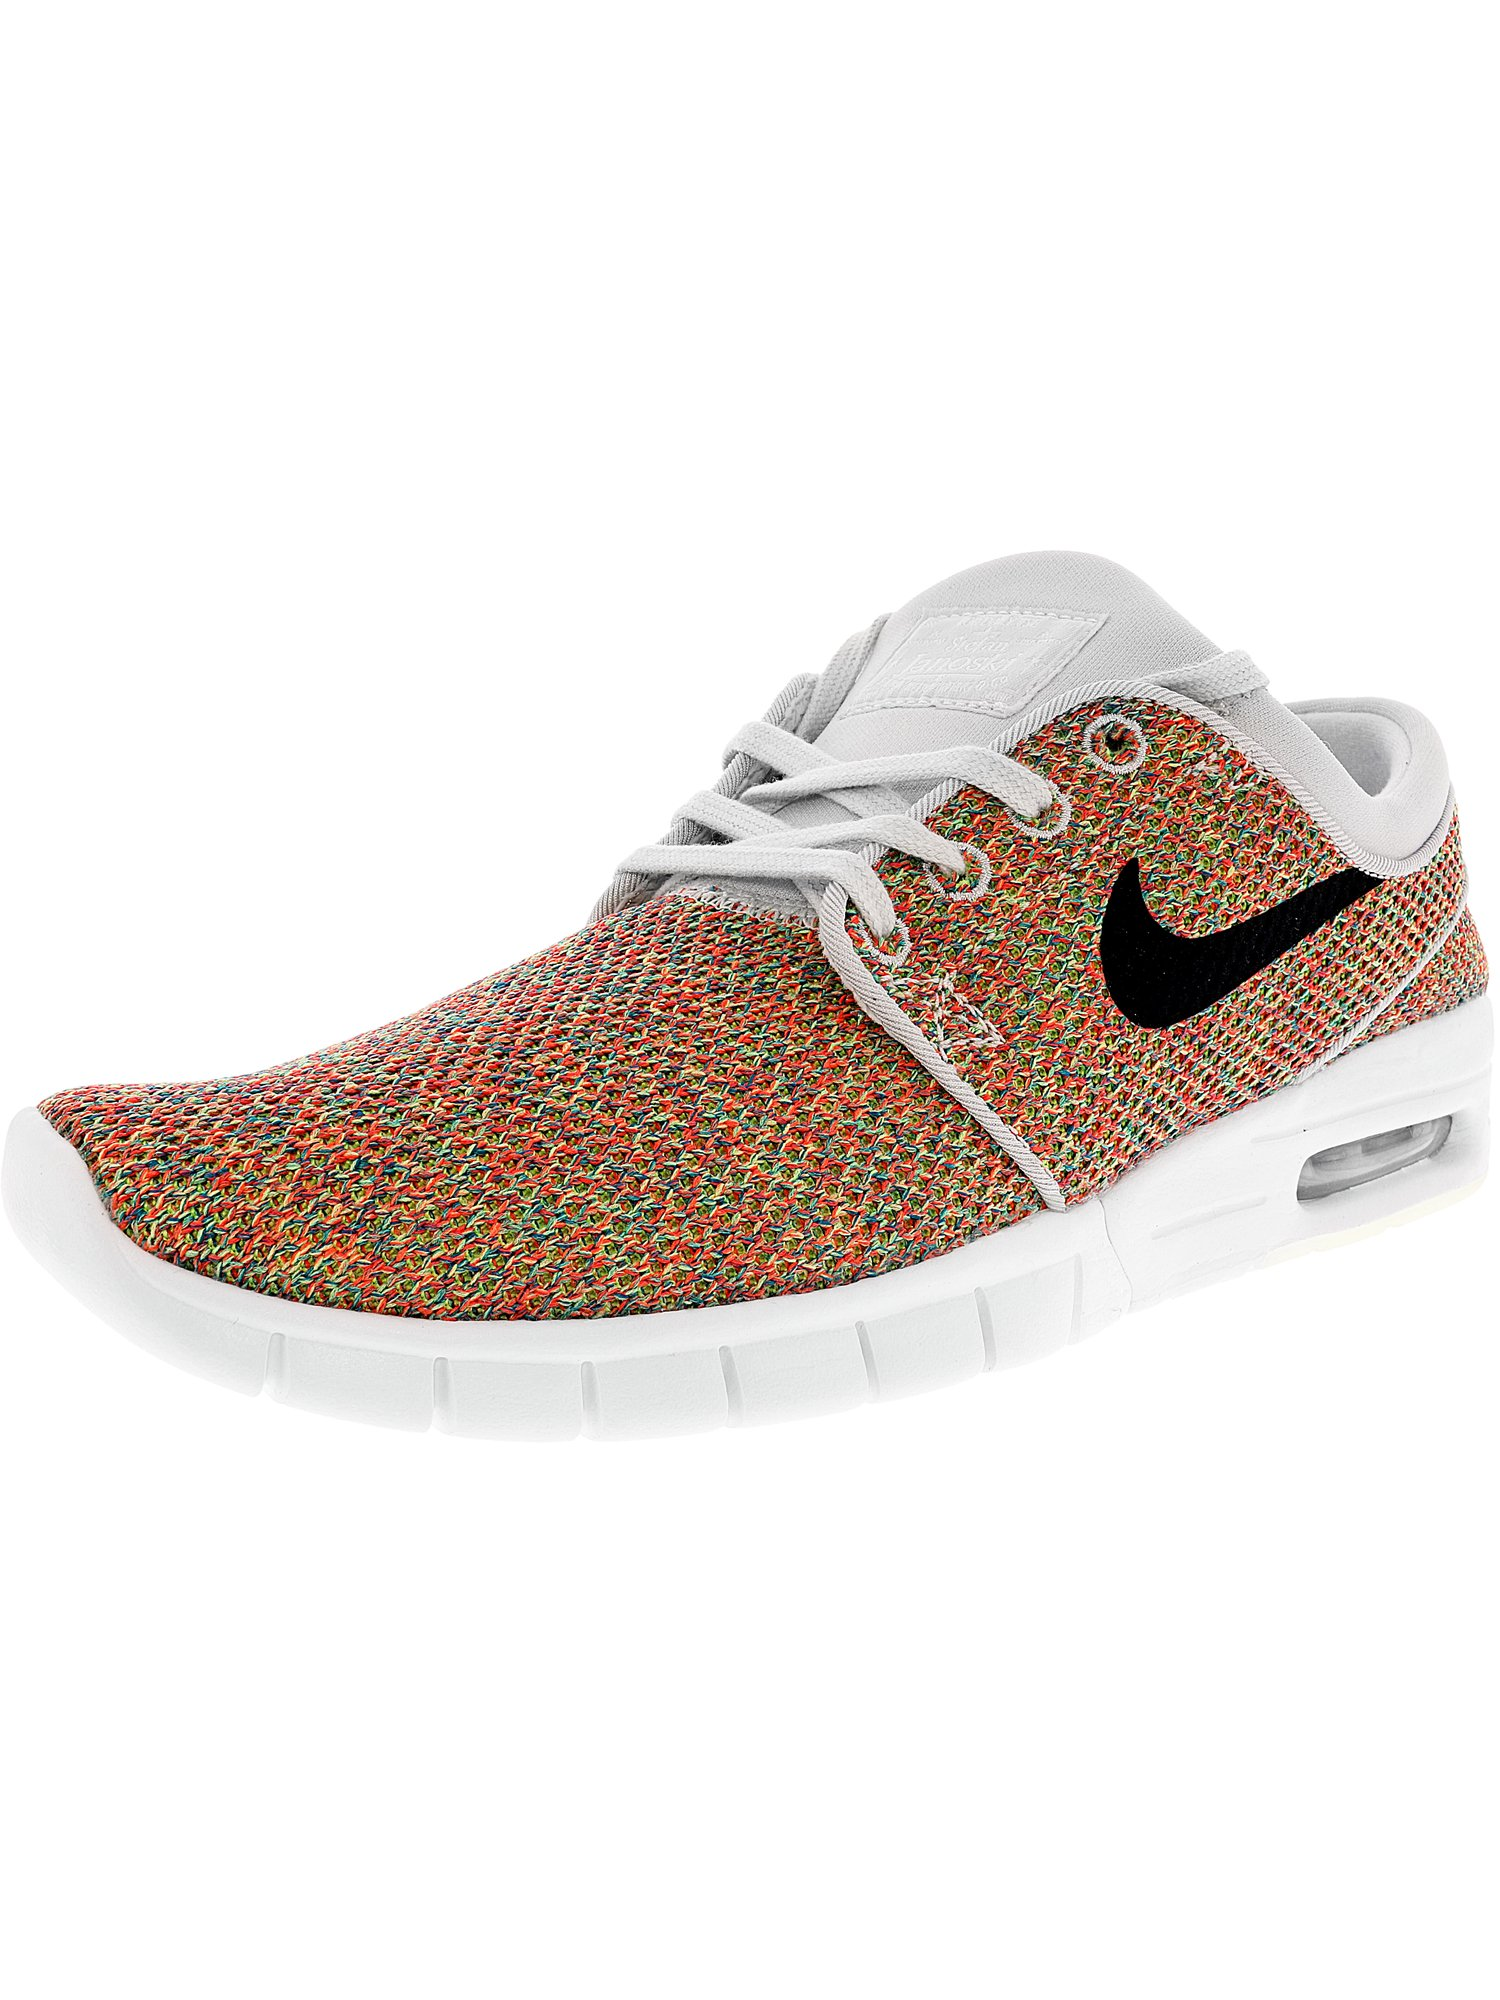 3981e21449f1 Nike Men s Stefan Janoski Max Black   White Ankle-High Skateboarding Shoe -  13M